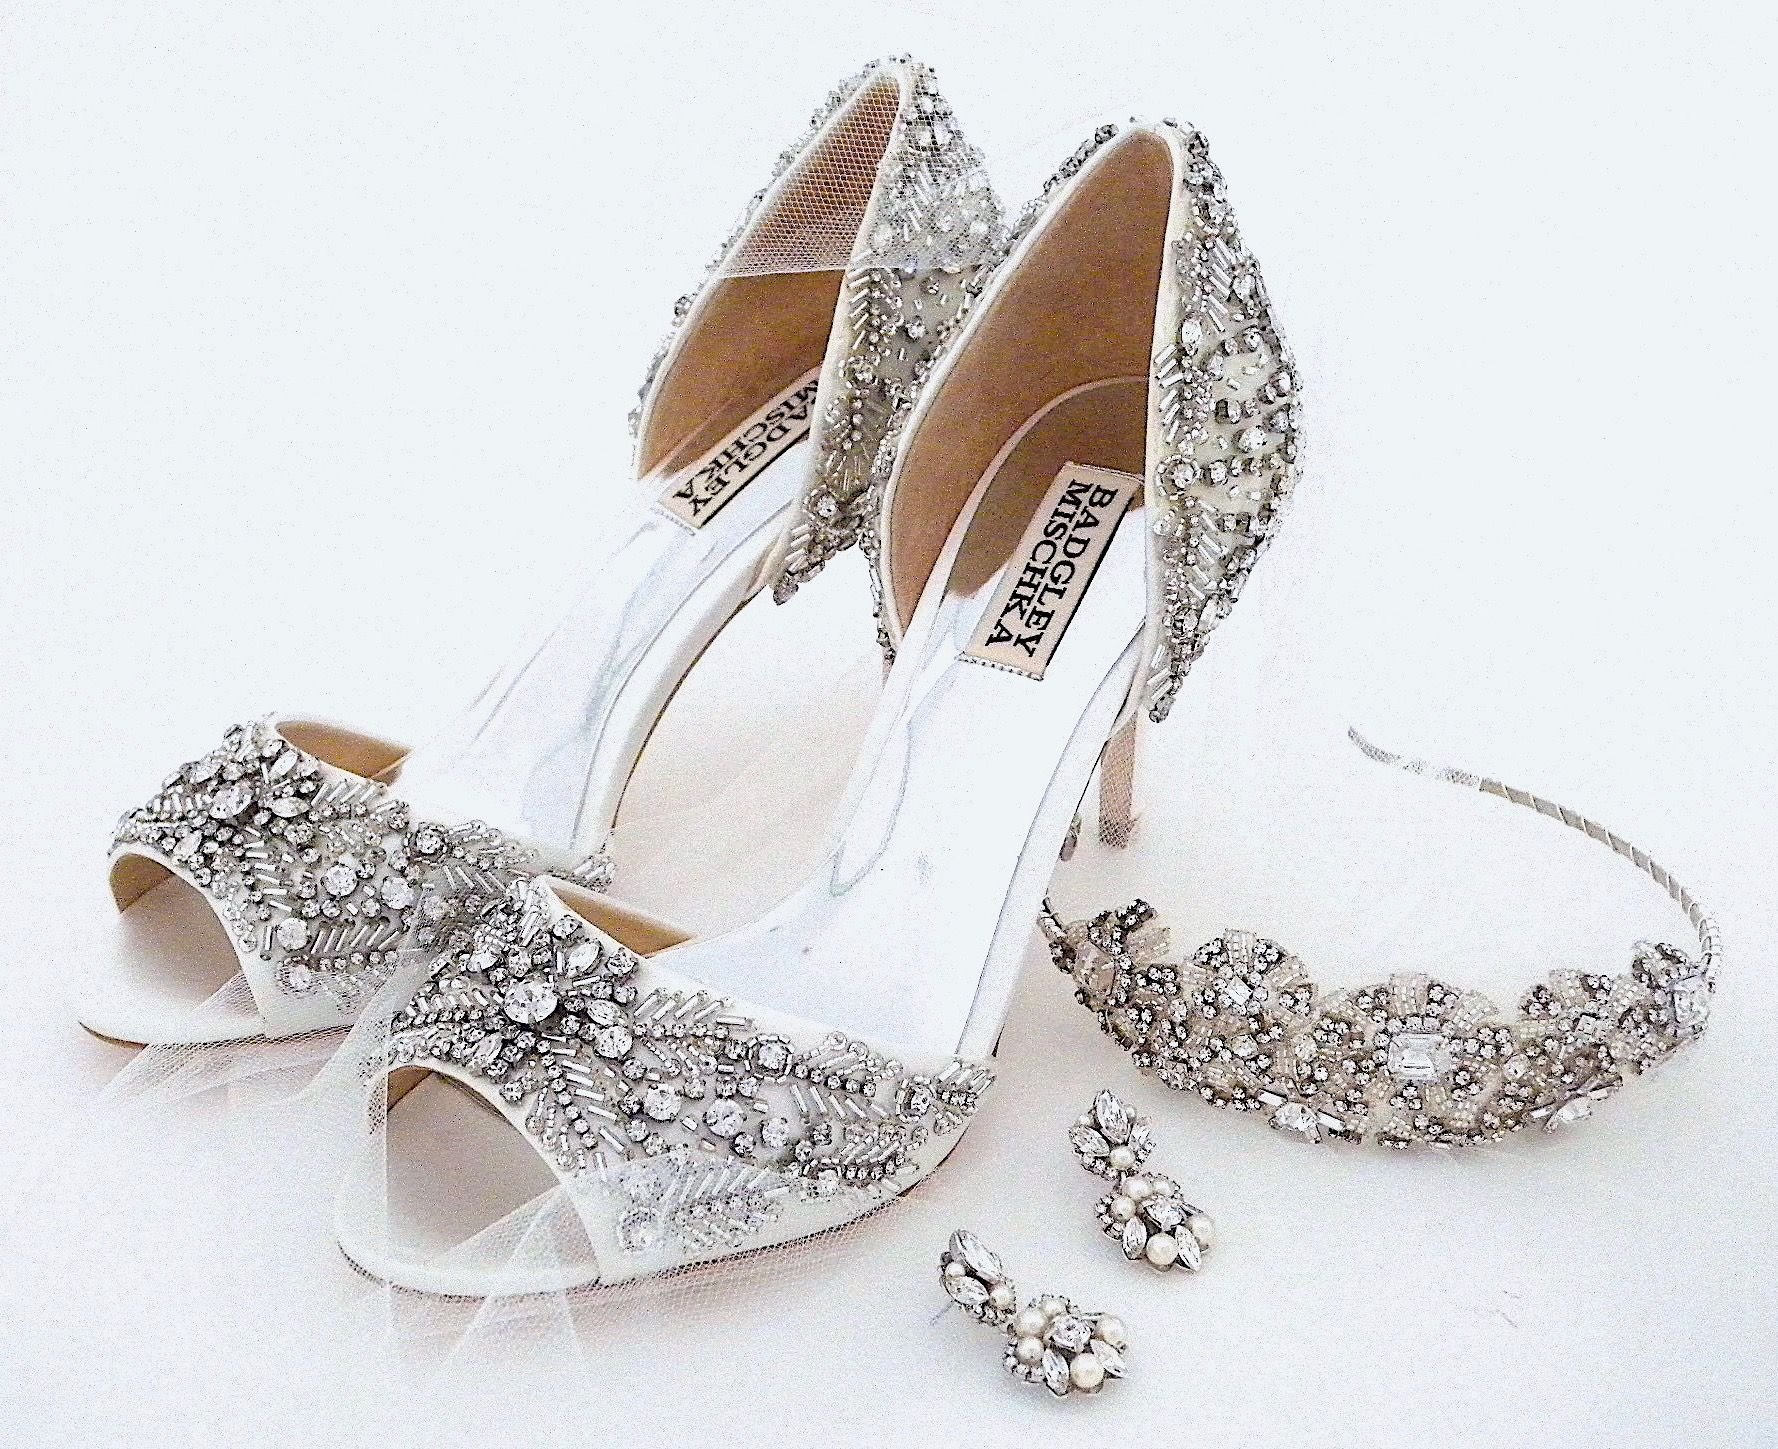 Wedding Shoes By Badgley Mischka Bridal Headpiece By Laura Jayne Wedding Earrings By Sara Gabriel Afterthedressr Wedding Shoes Bridal Earrings Bridal Accessories